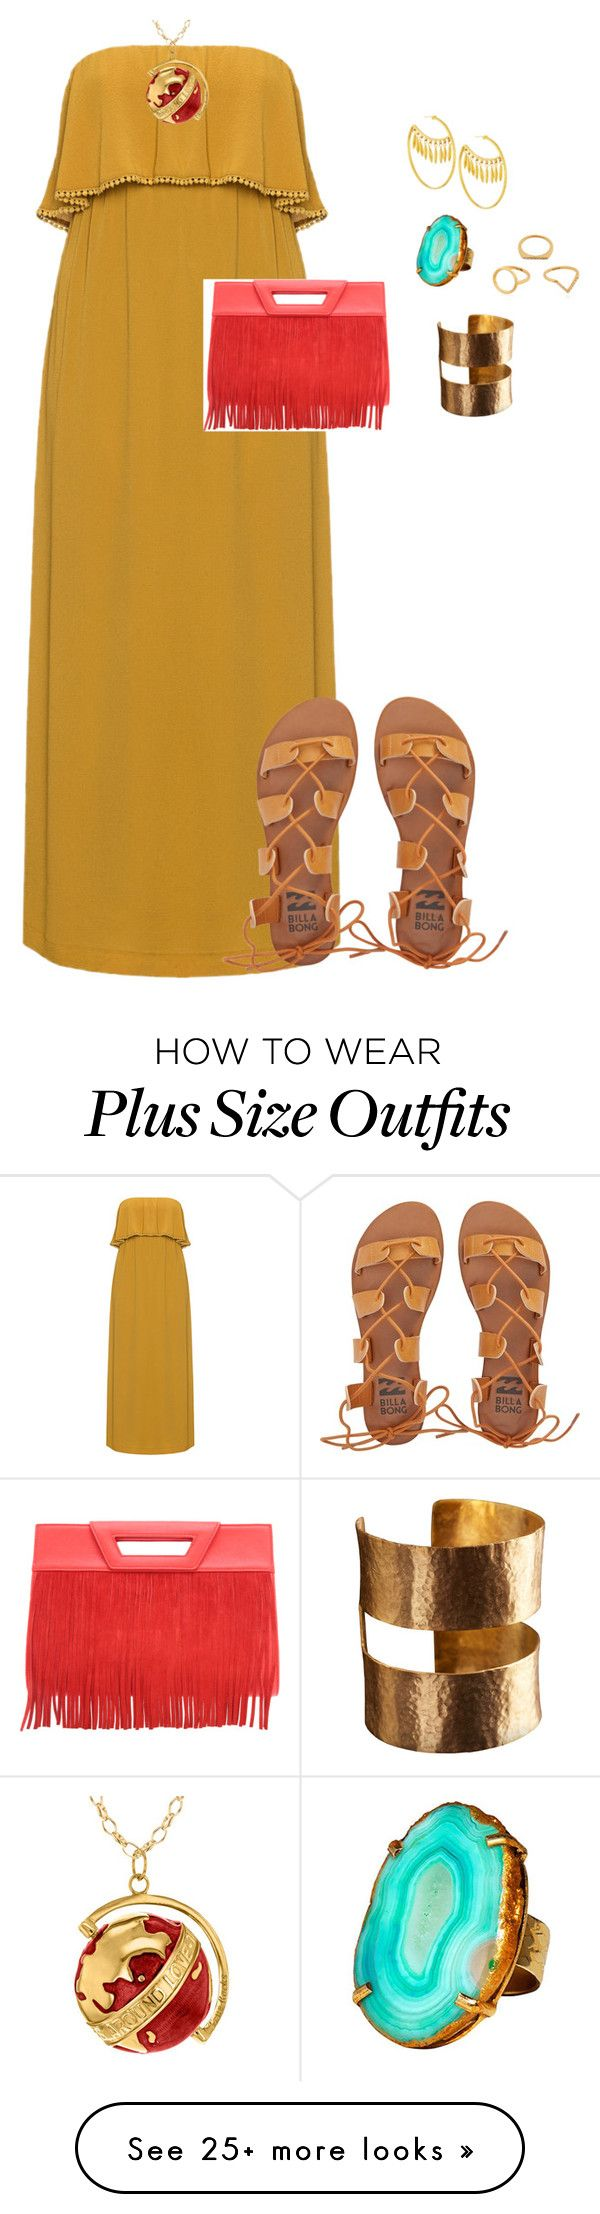 """my plus size summer chic style"" by kristie-payne on Polyvore featuring Mat, Billabong, True Rocks, Gurhan, Mela Artisans, Bebe, Kenzo and ADIN & ROYALE"